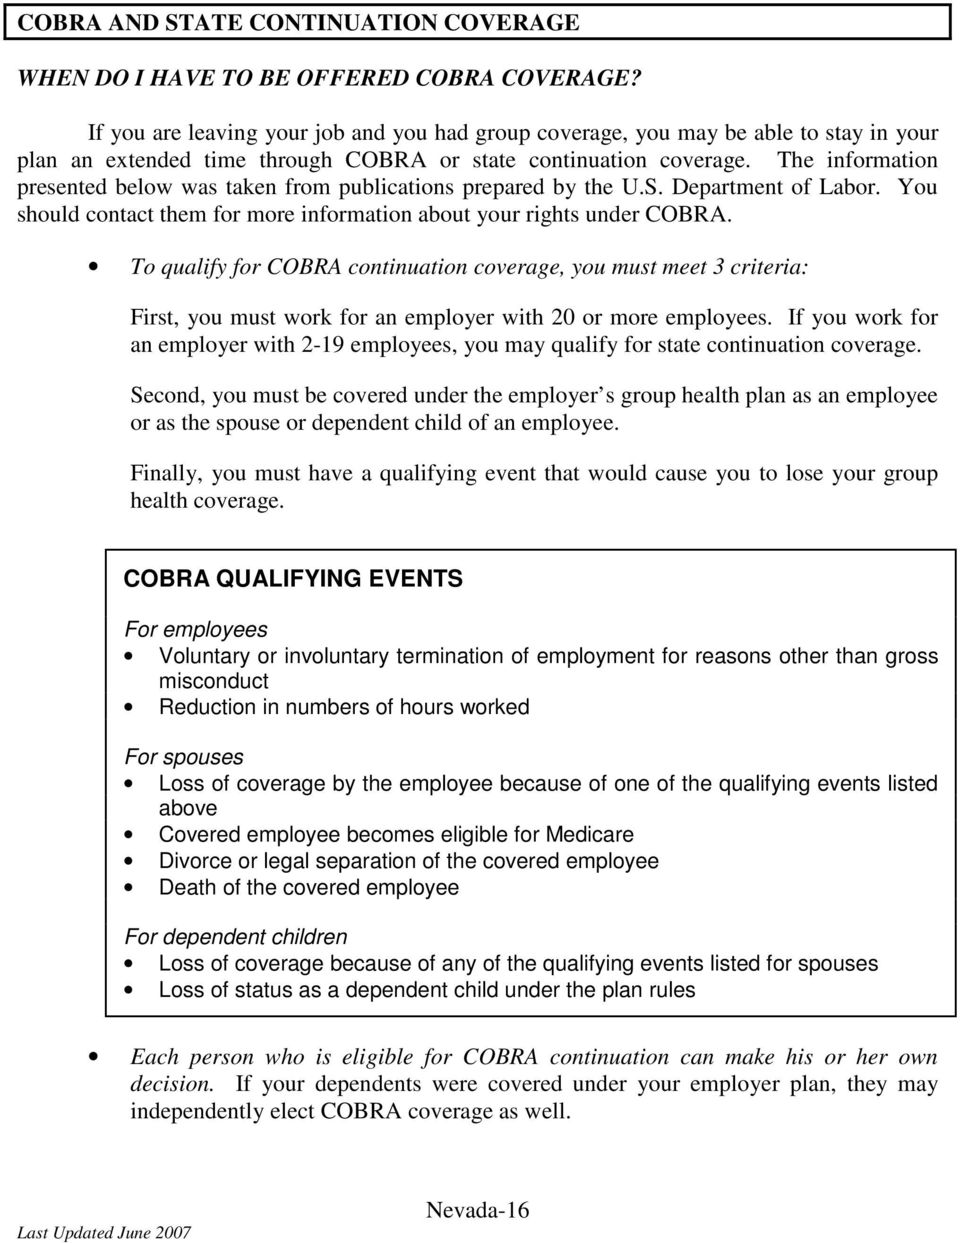 The information presented below was taken from publications prepared by the U.S. Department of Labor. You should contact them for more information about your rights under COBRA.